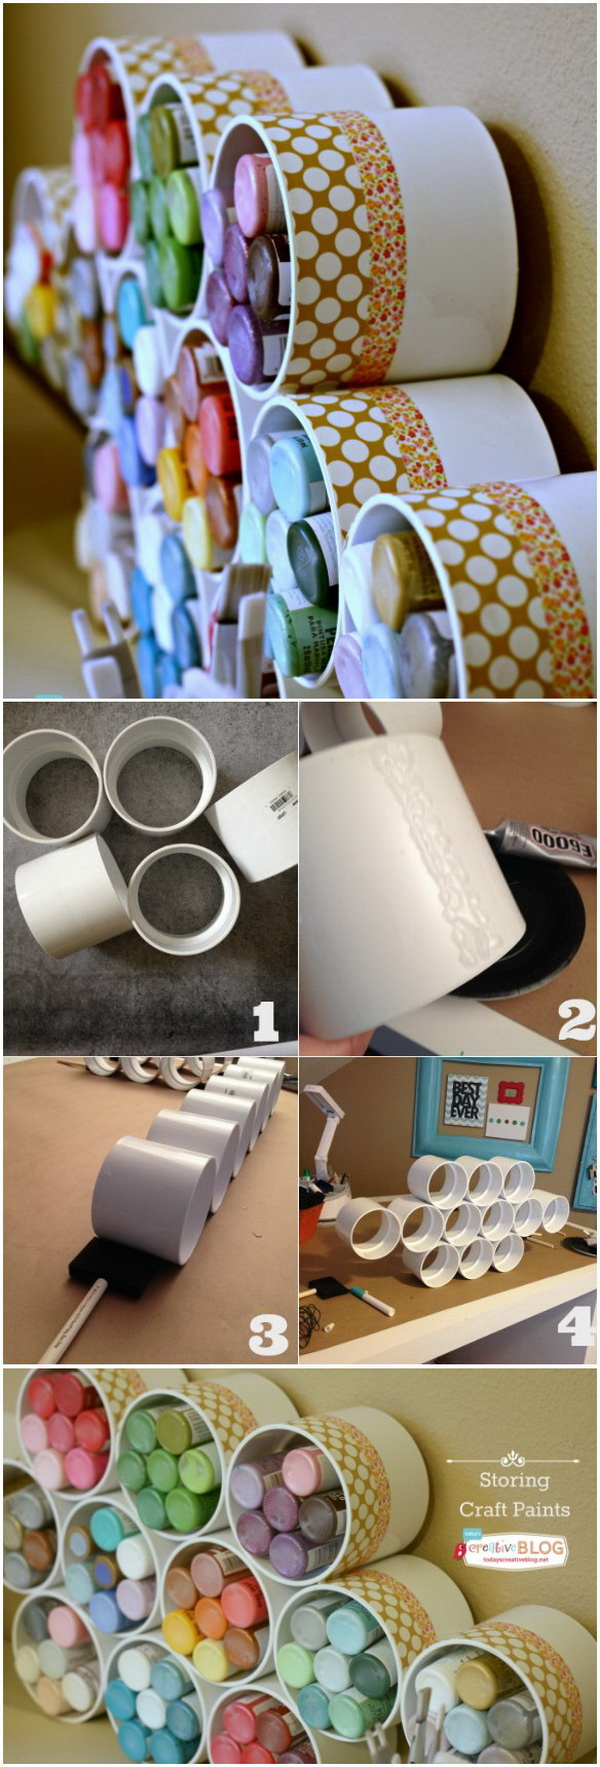 Craft room organization storage ideas for creative juice Homemade craft storage ideas